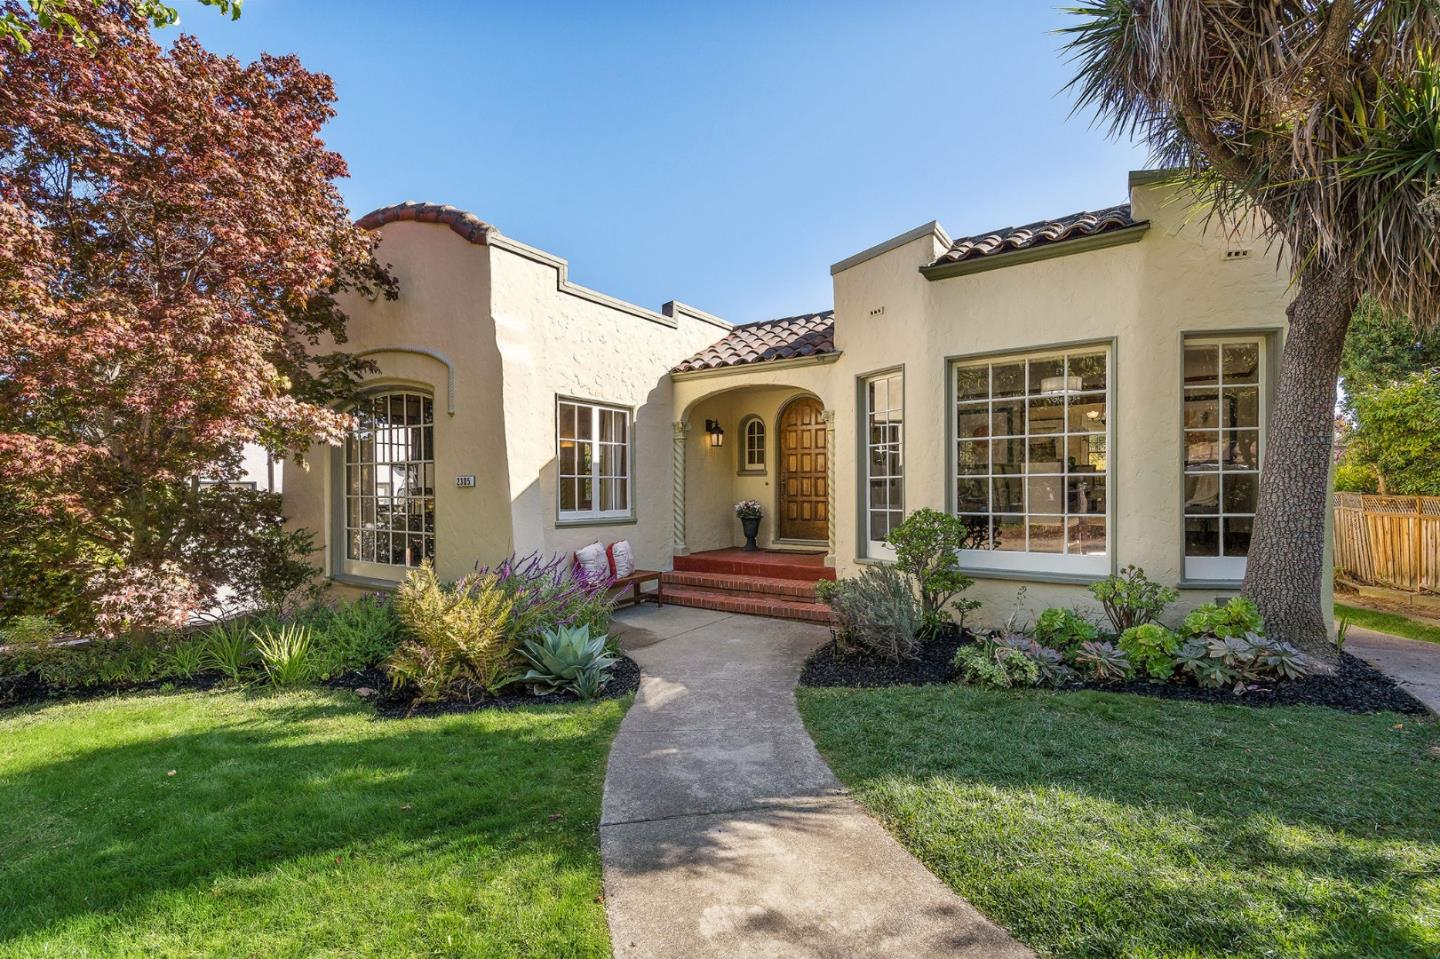 2305 Adeline DR, Burlingame, California